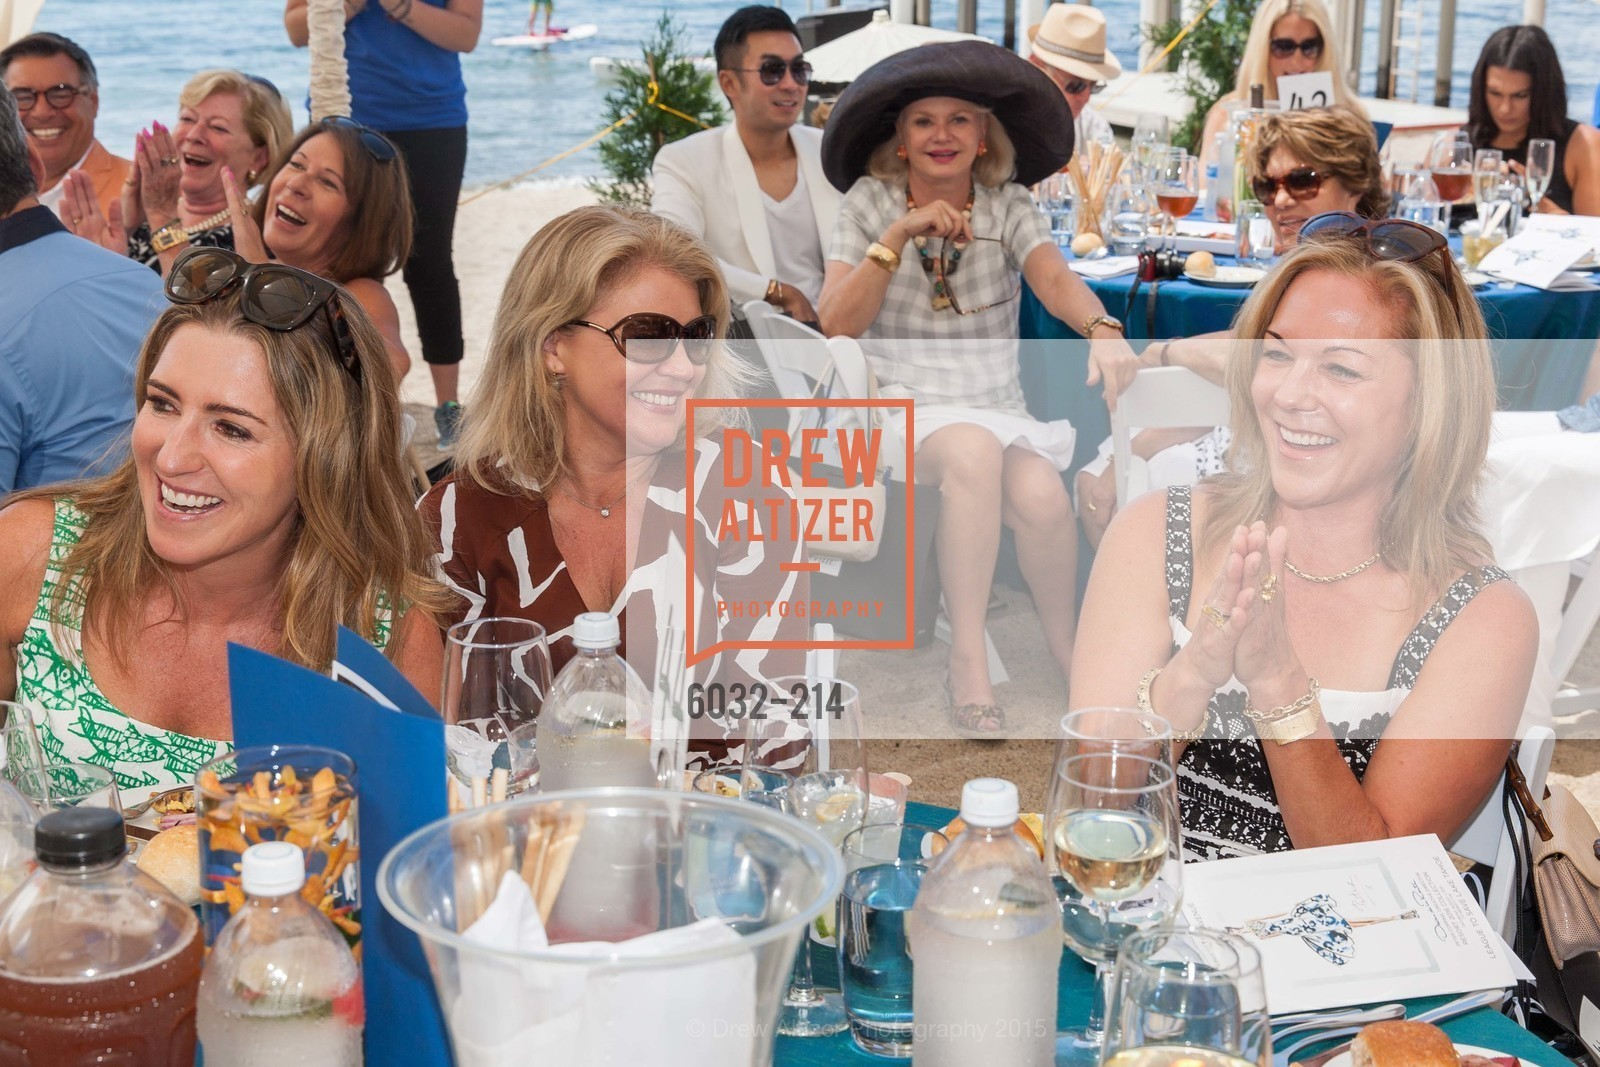 Jessica Hickingbotham, Tammy Pioch, Darayn Hickingbotham, Saks Fifth Avenue and The League to Save Lake Tahoe Present Fashion on the Lake, Private Residence, August 1st, 2015,Drew Altizer, Drew Altizer Photography, full-service agency, private events, San Francisco photographer, photographer california